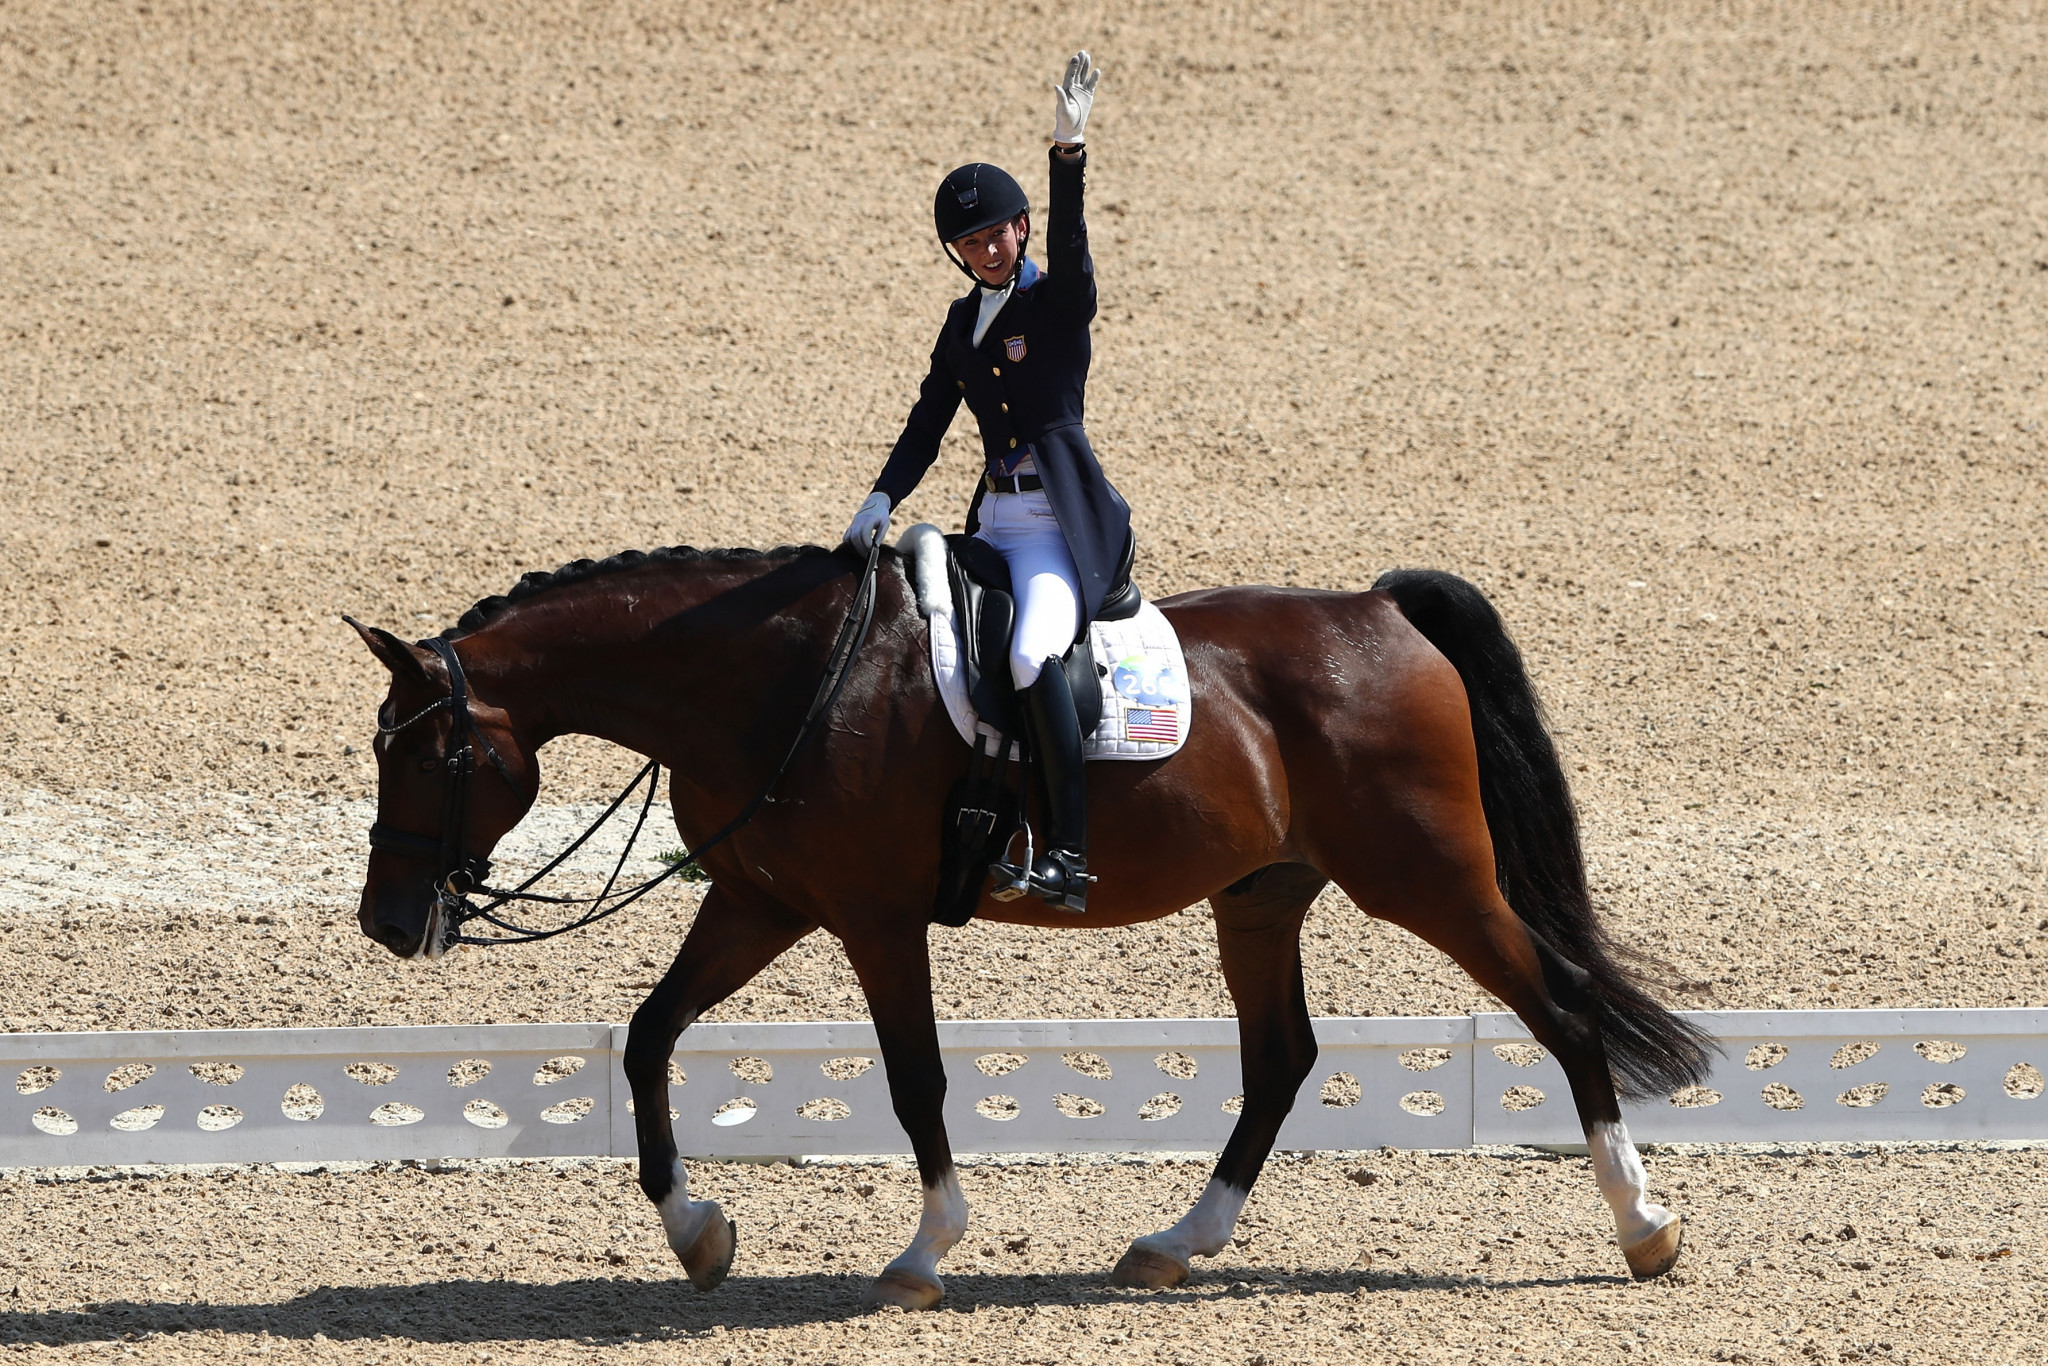 Werth hoping to defend title at FEI World Cup Dressage Final in Paris